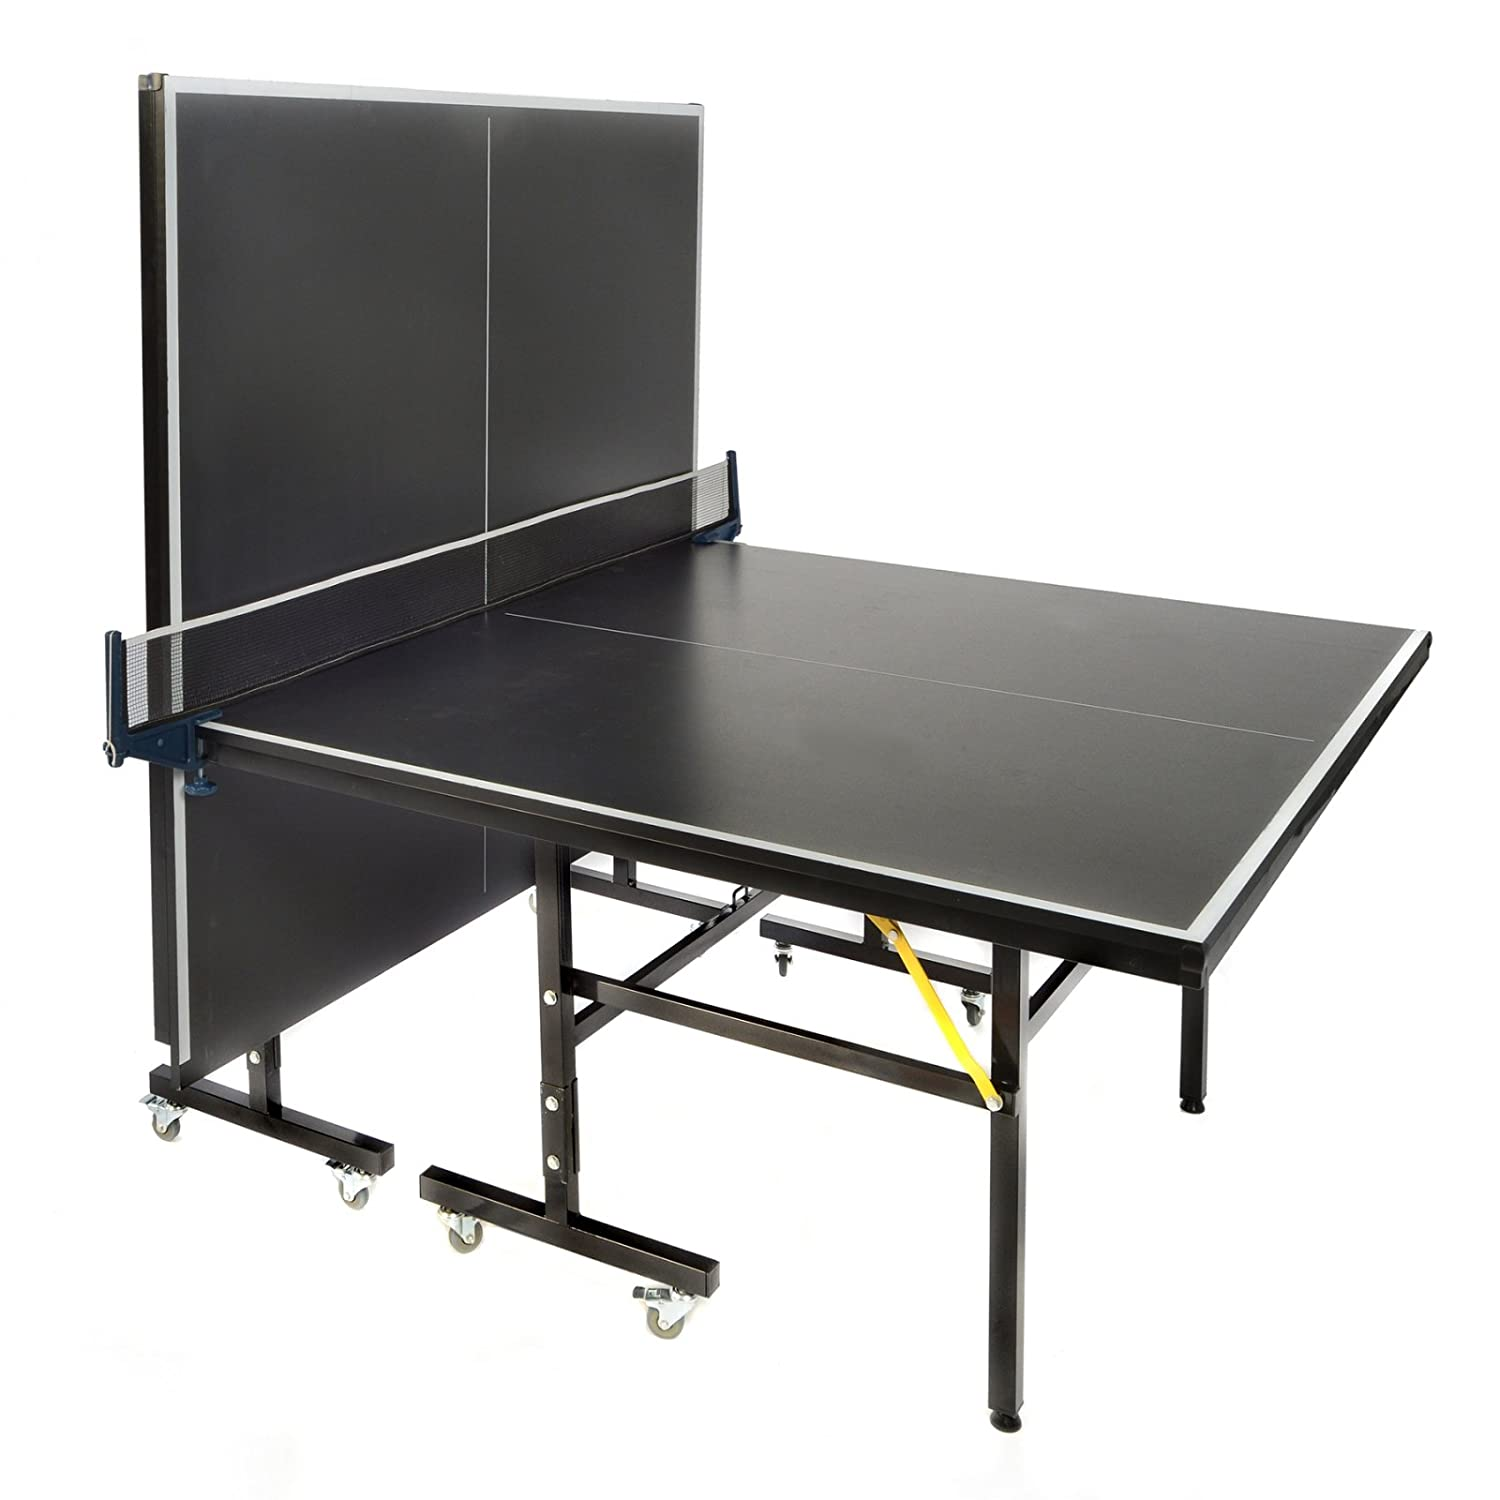 Amazon.com : Lion Sports Omega Indoor Table Tennis Table : Sports U0026 Outdoors